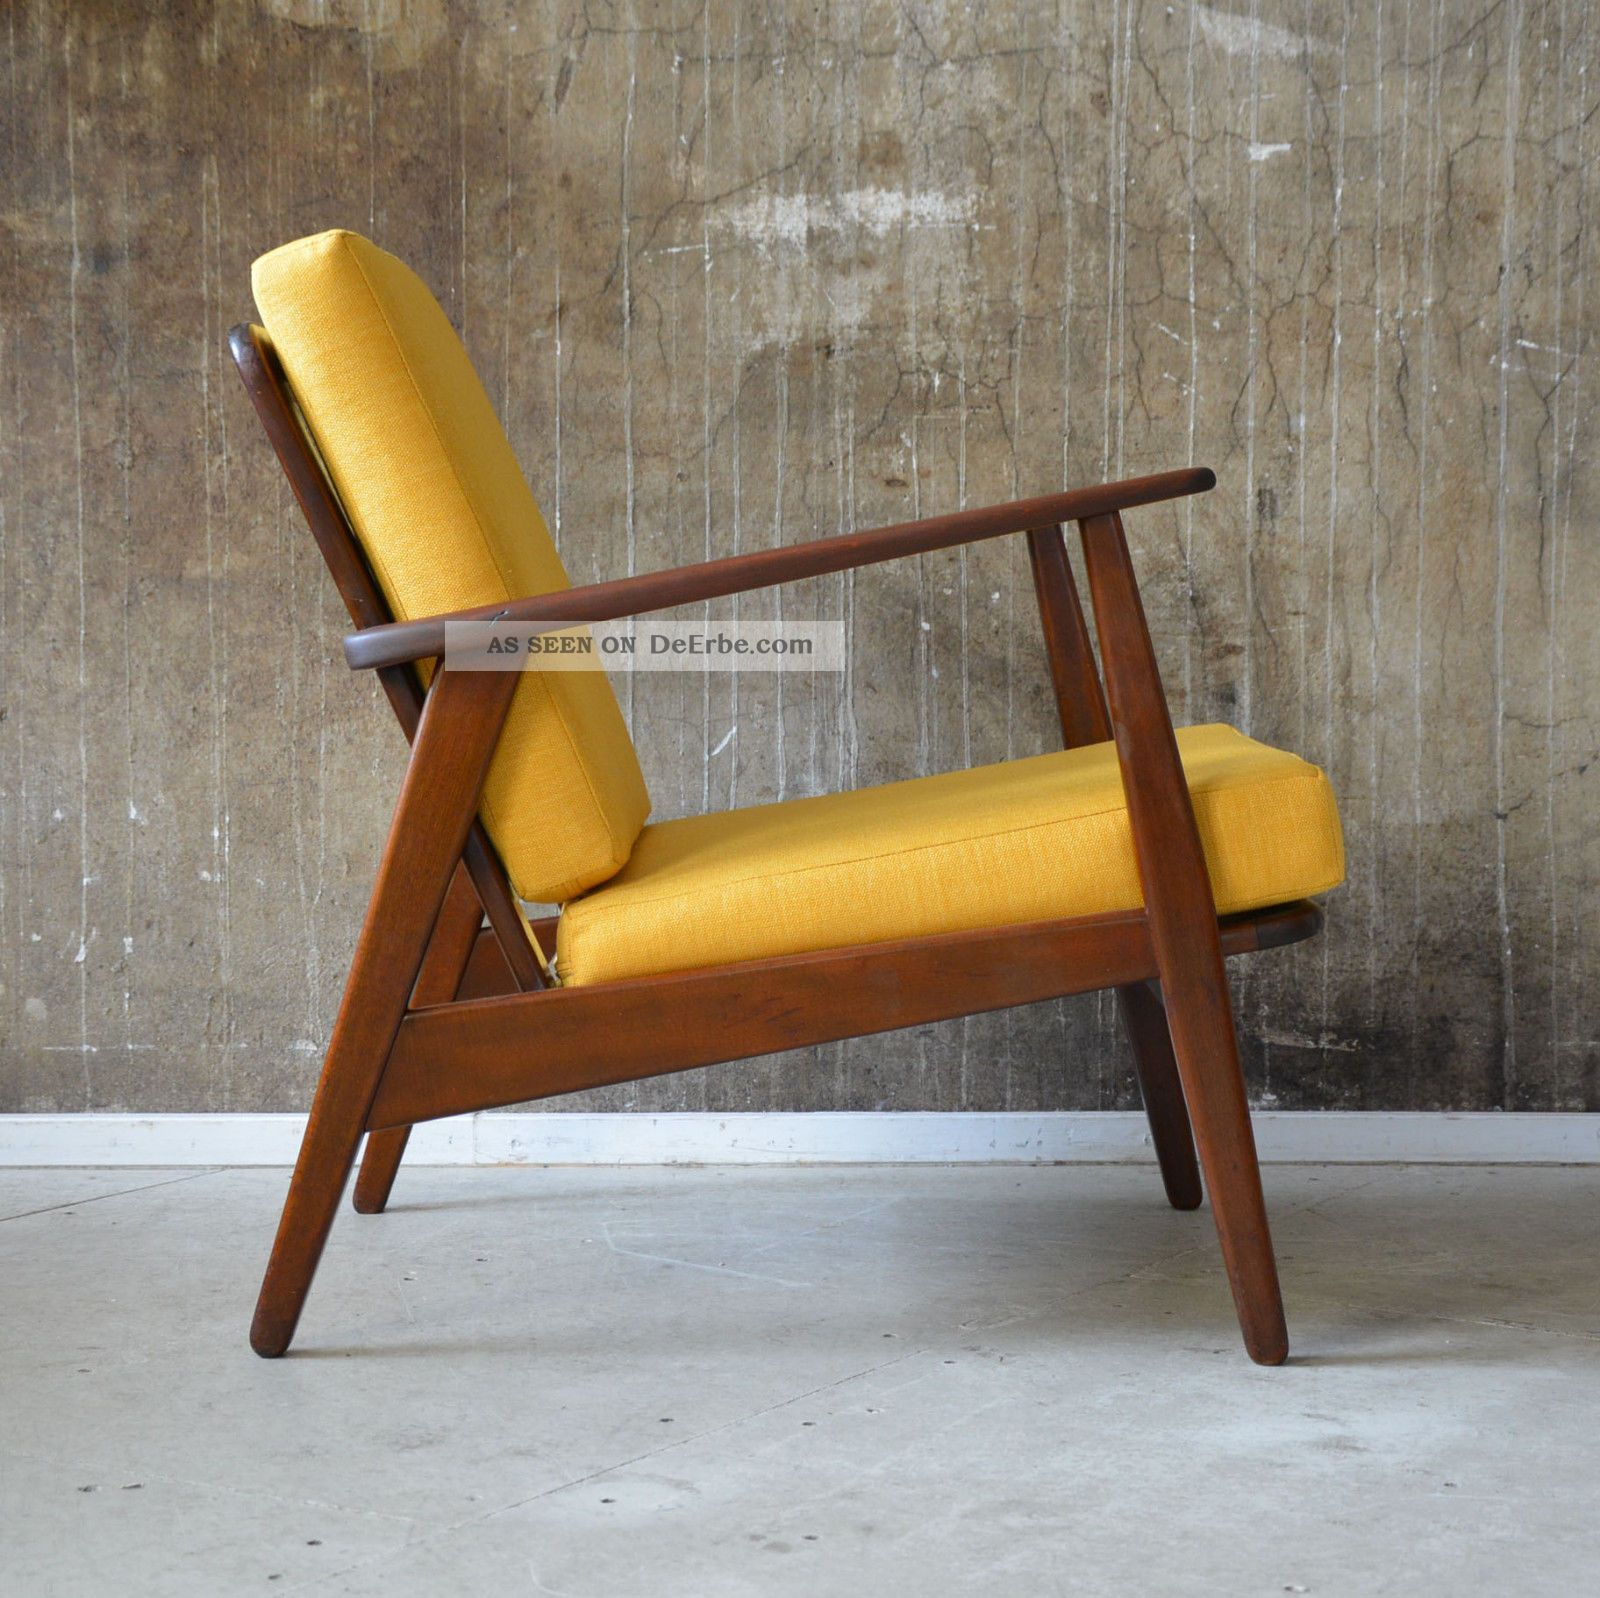 Design Sessel 60er Teak Sessel Danish Design 60s Easy Chair Vintage Midcentury